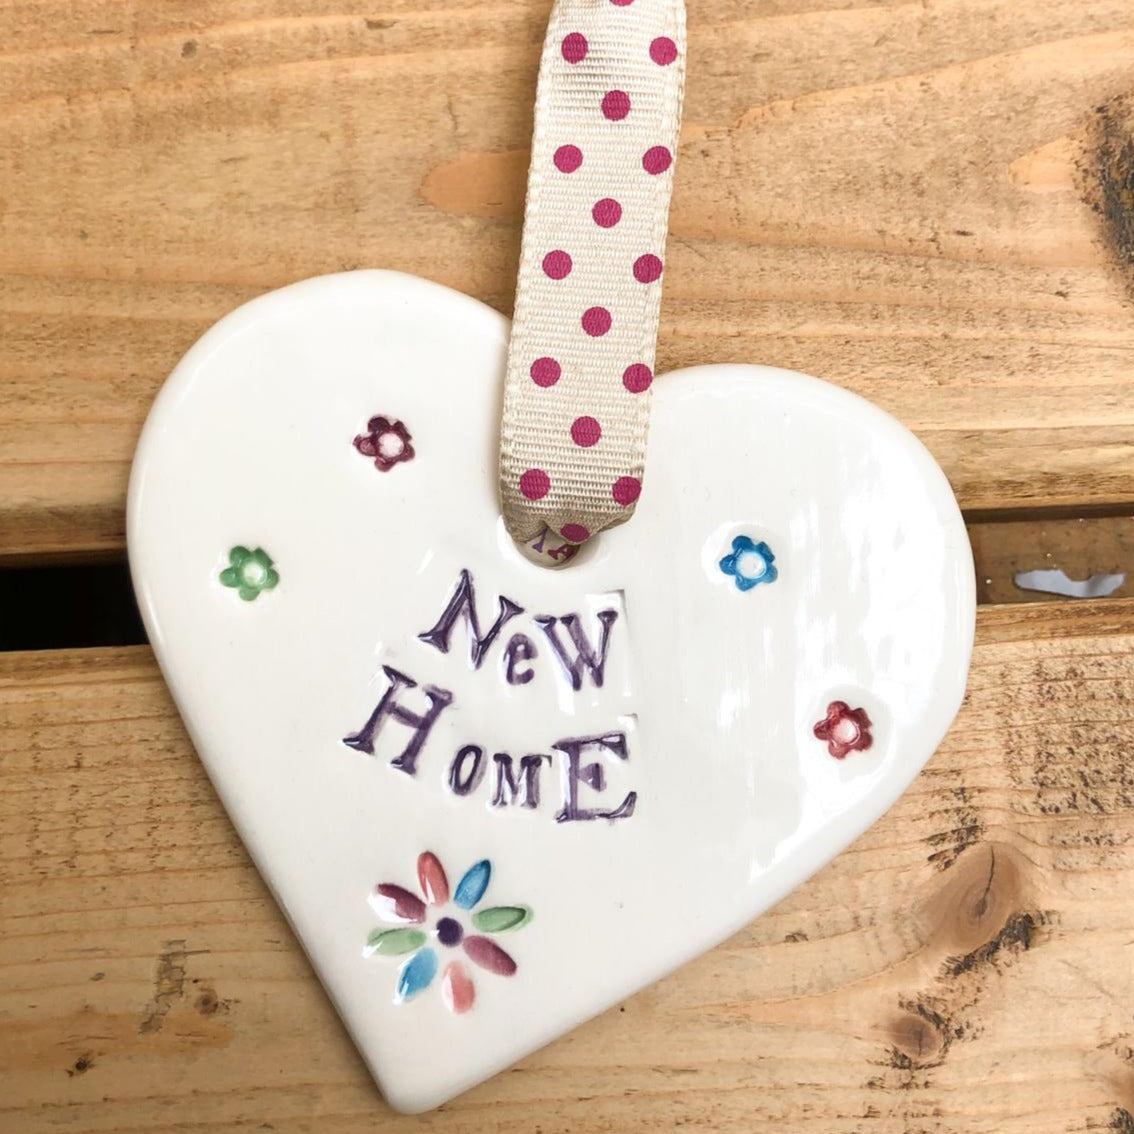 Hand painted ceramic heart featuring flower design and the sentiment 'New Home'  Handmade in the UK using clay, glaze and paint sourced locally.  Material:  Ceramic